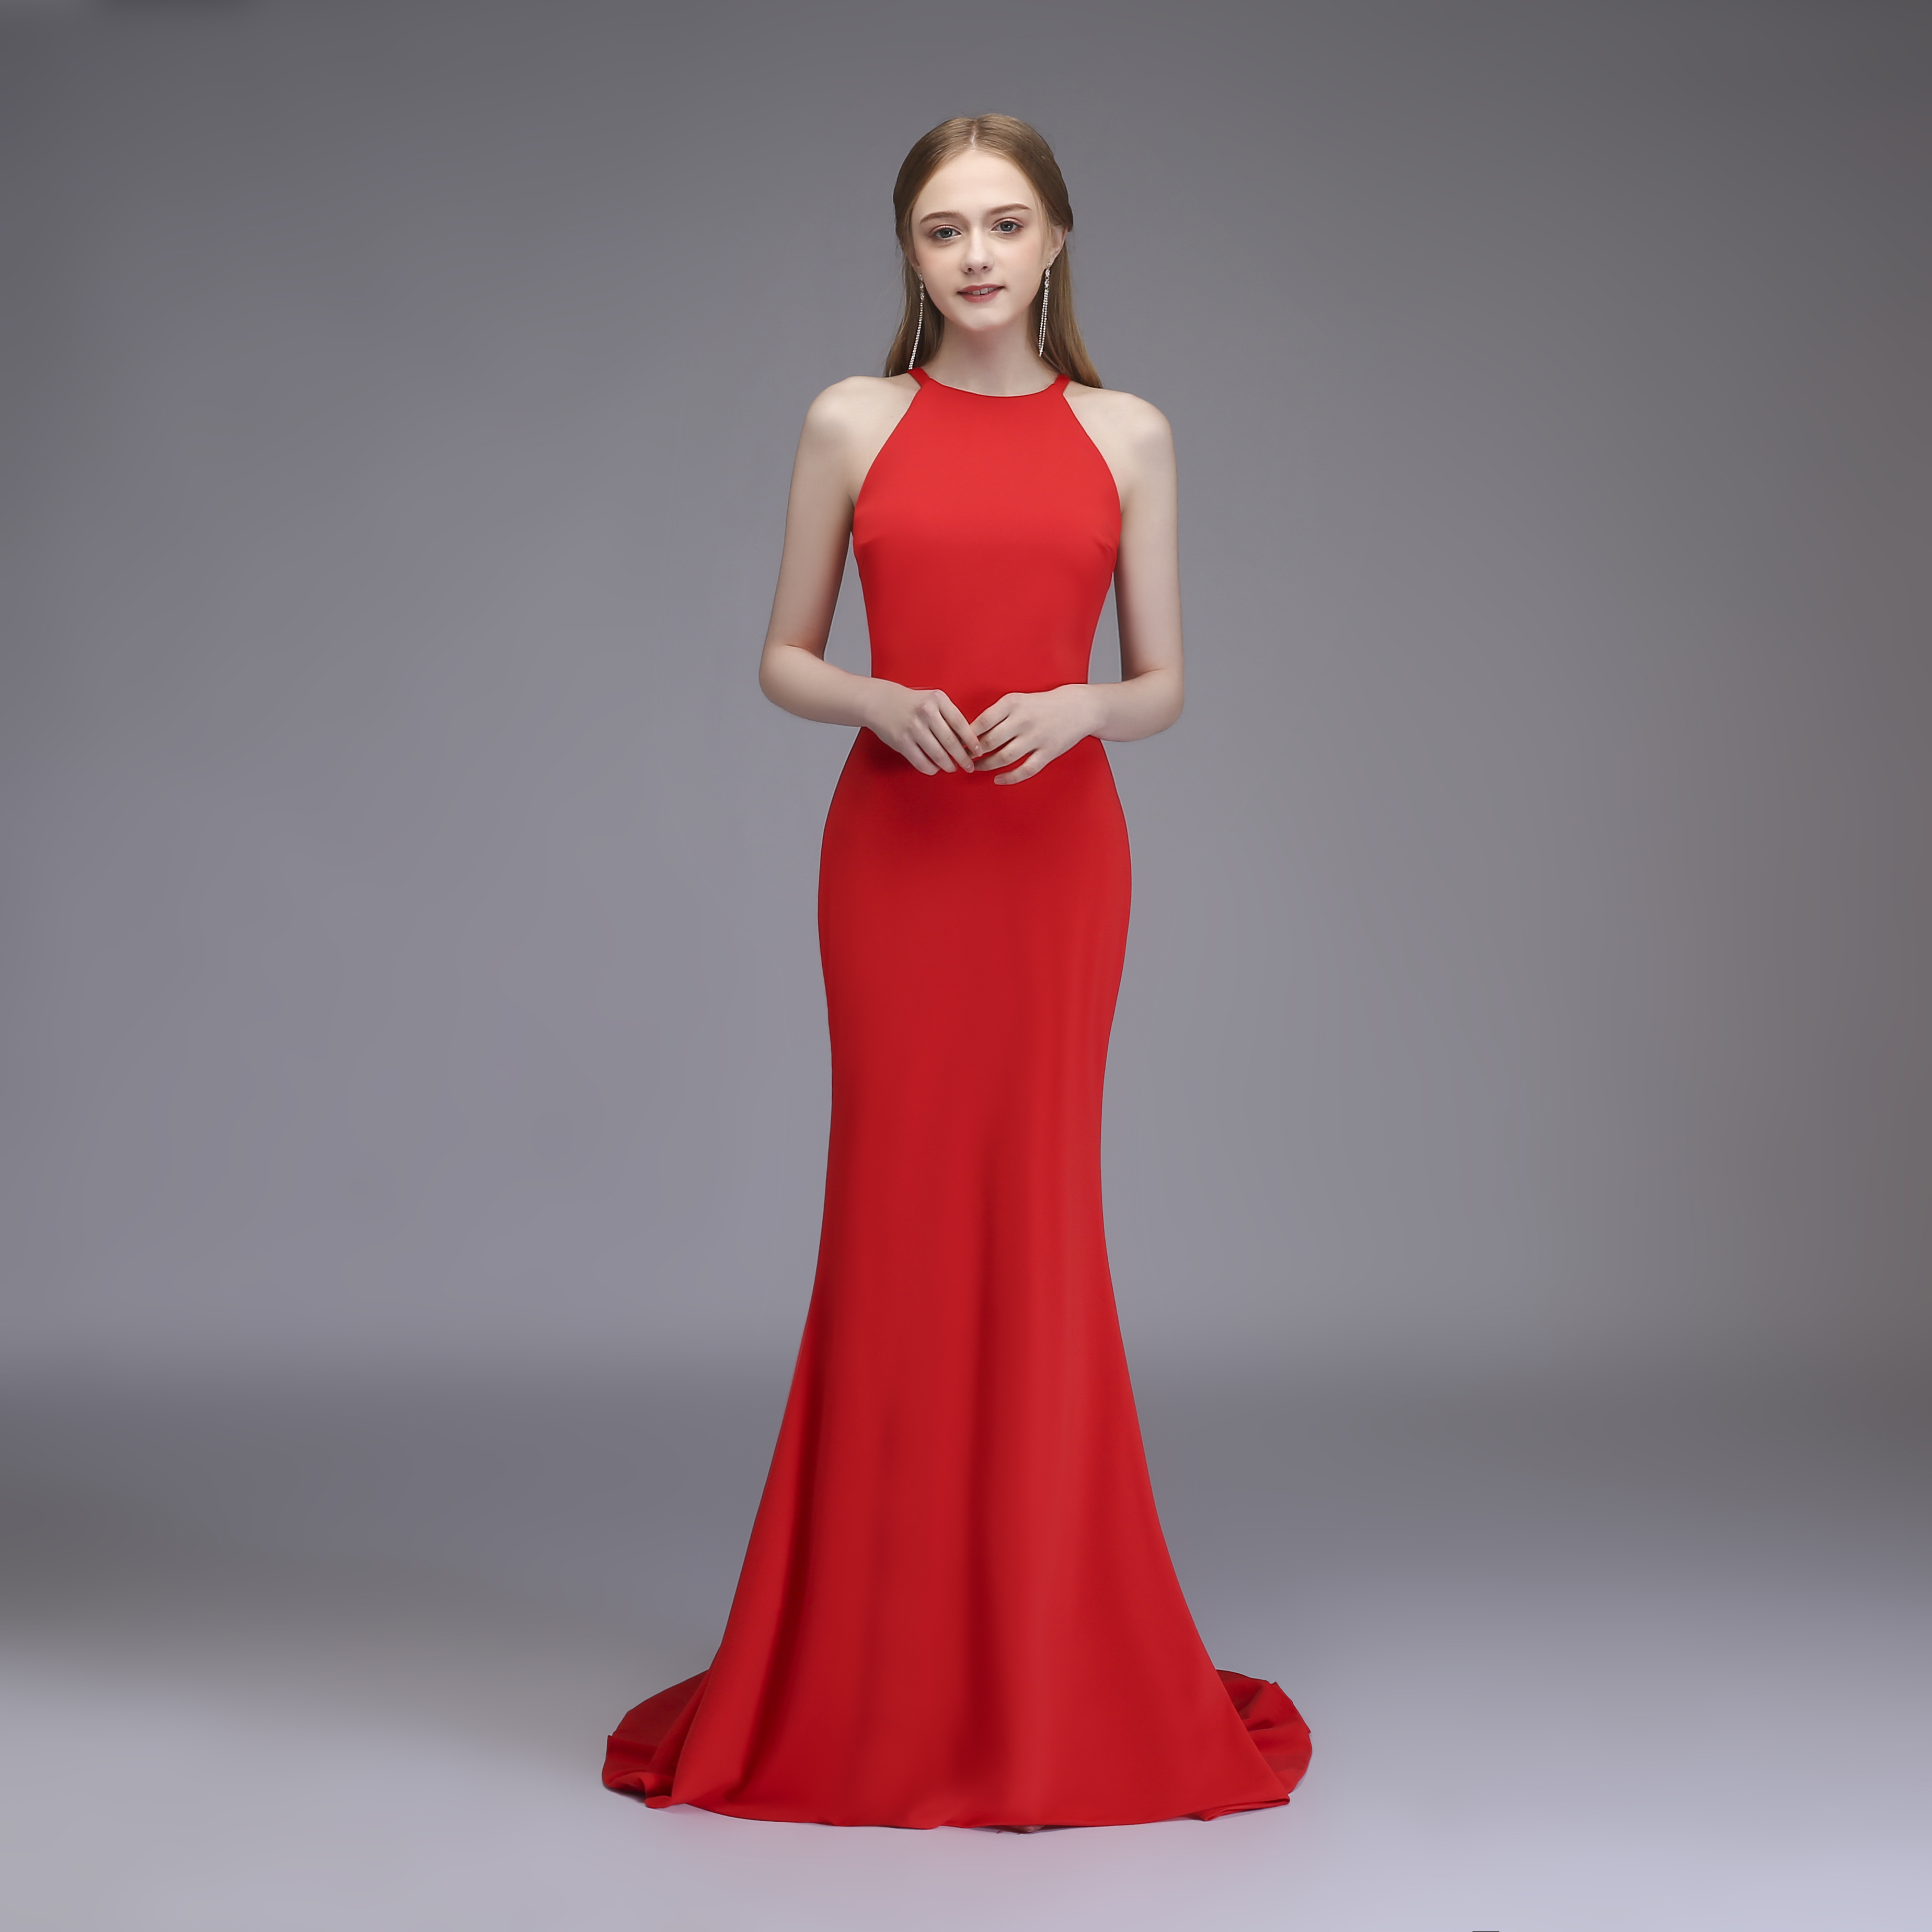 Sleeveless Long Evening Dress Chiffon Red Prom Party Dresses Formal Women Gown Elegant Mermaid Dress For Wedding Party Hot Sale